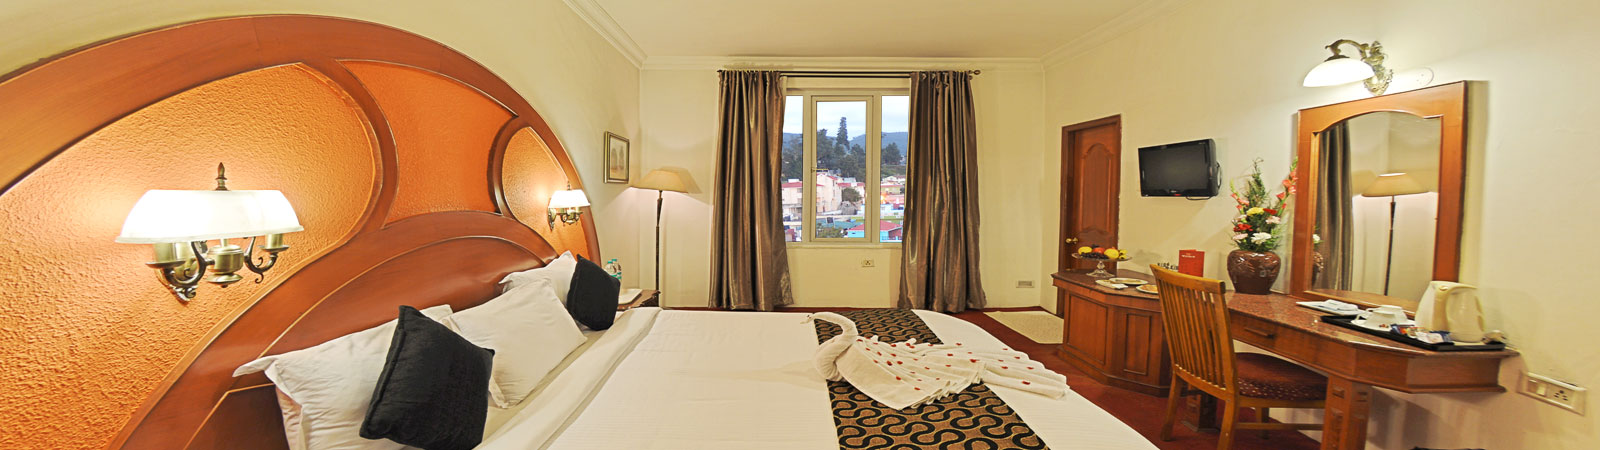 Hotels in Ooty for family